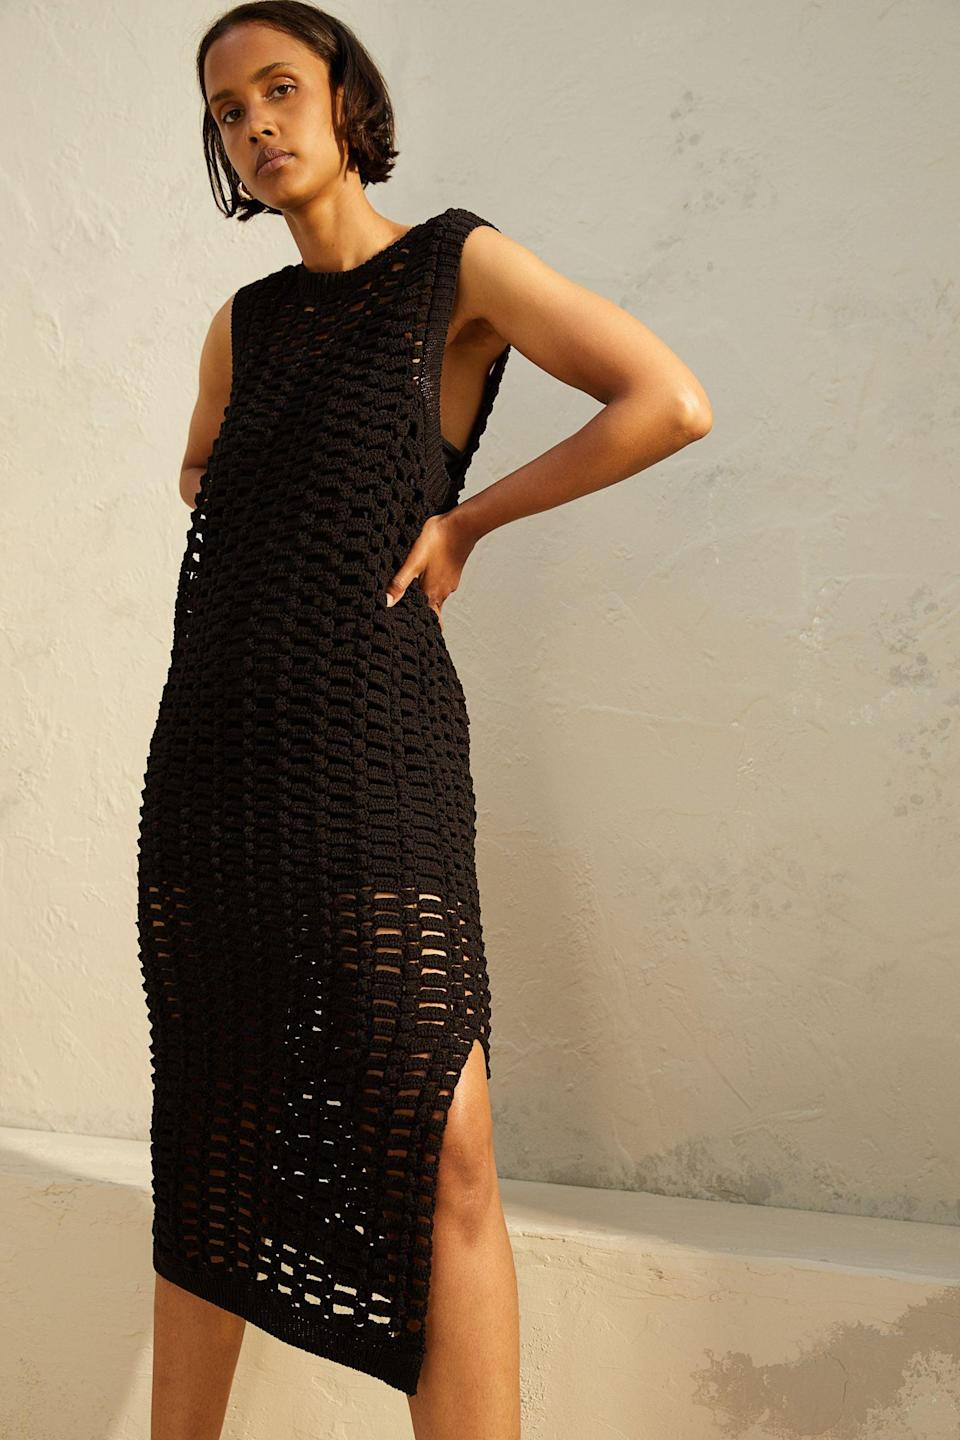 <p>Slip this <span>Crocheted Dress</span> ($63, originally $70) over your bathing suit, and you're all set for a polished beach day. From the slit to the see-through crochet style, everything about this dress is flattering.</p>